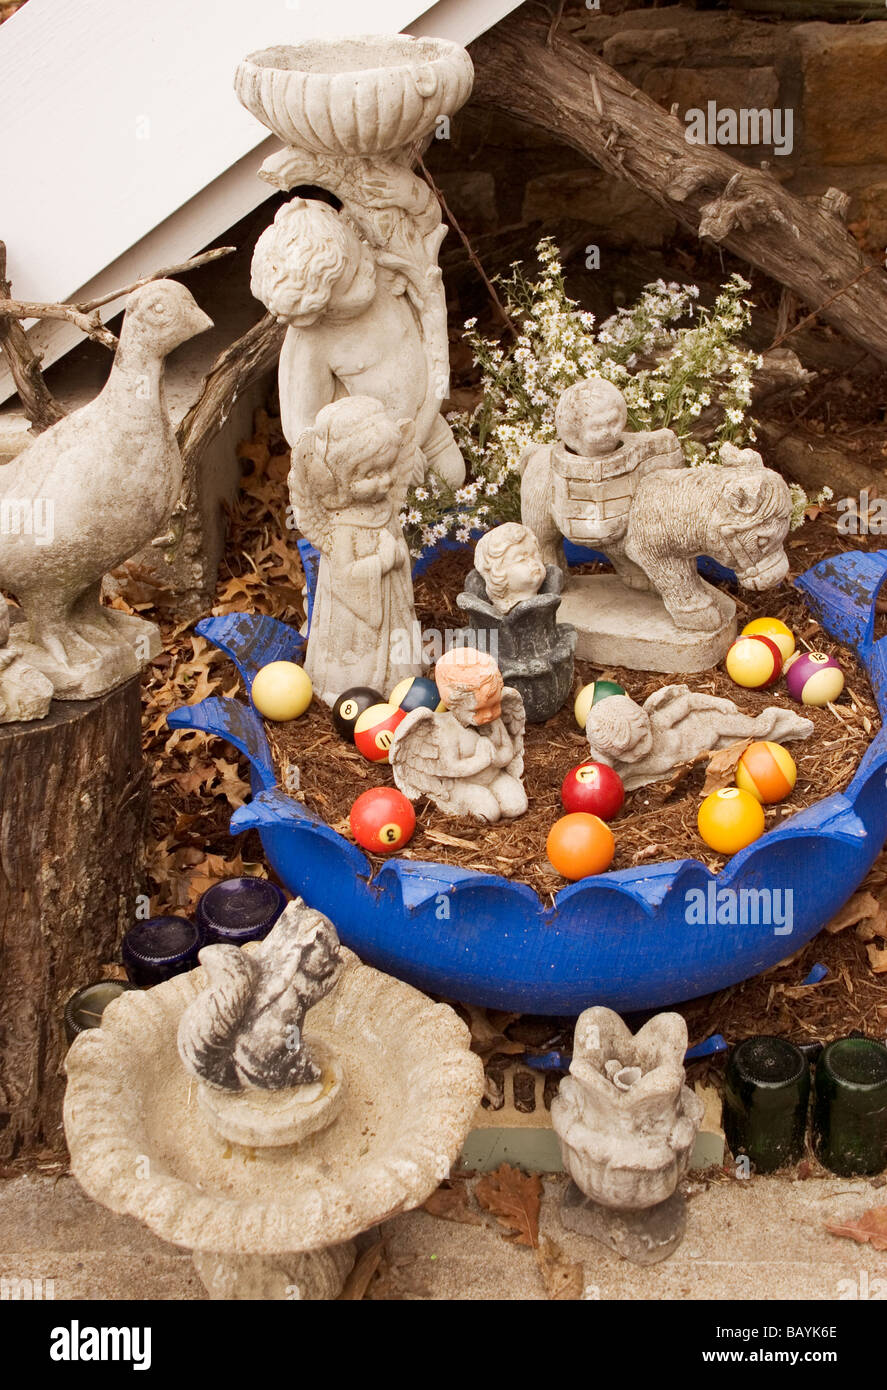 Tacky cement statuary and colorful pool balls decorate the corner of a homeowner's yard. - Stock Image